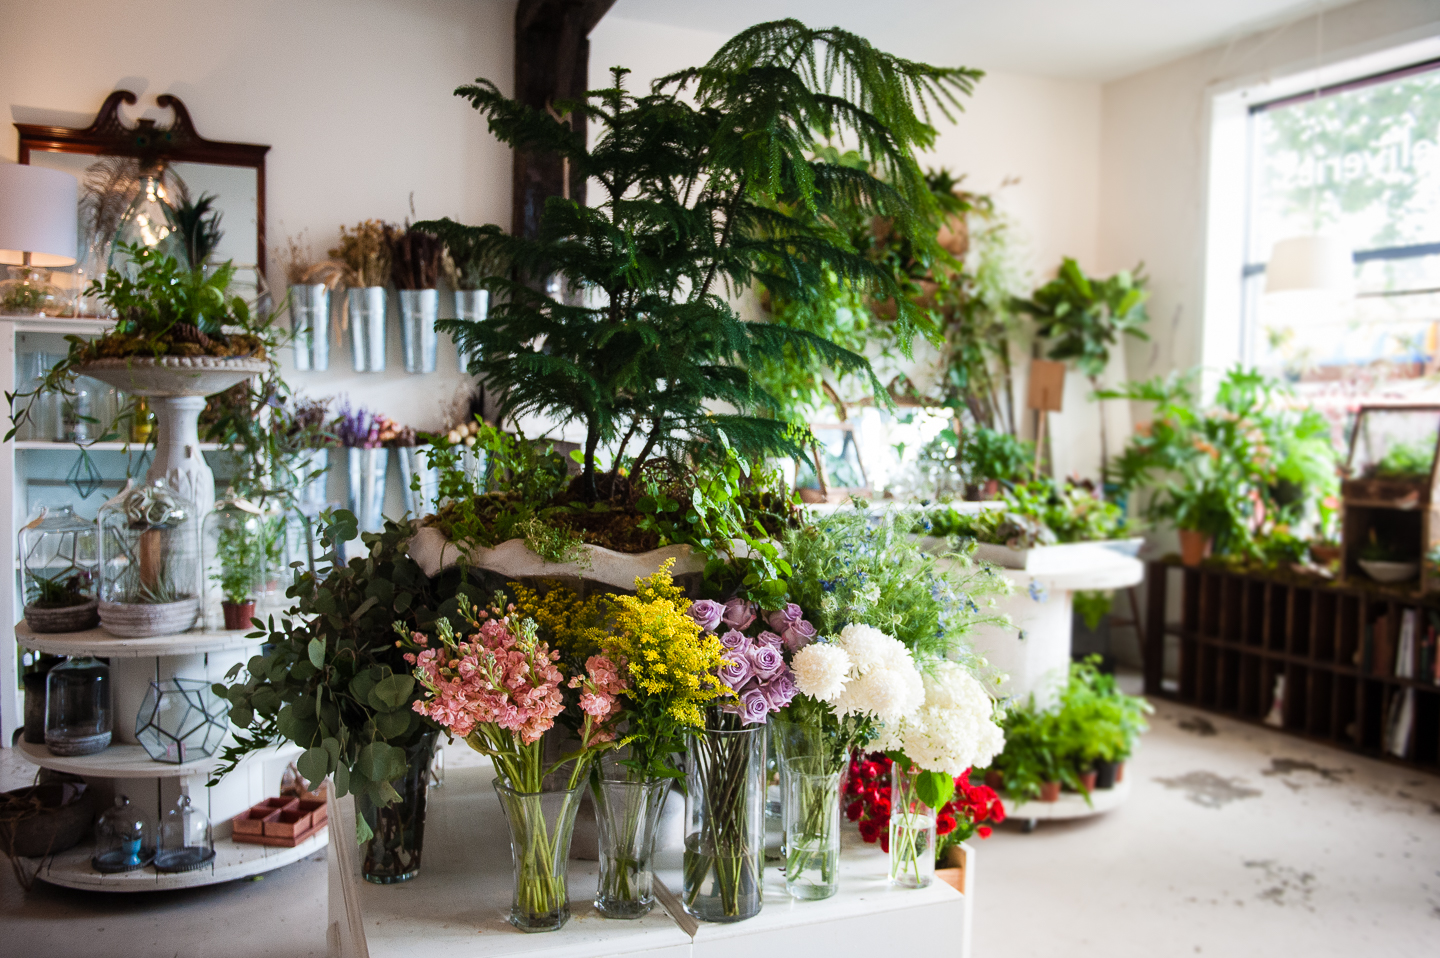 Floras storefront with gorgeous flowers adorning the space